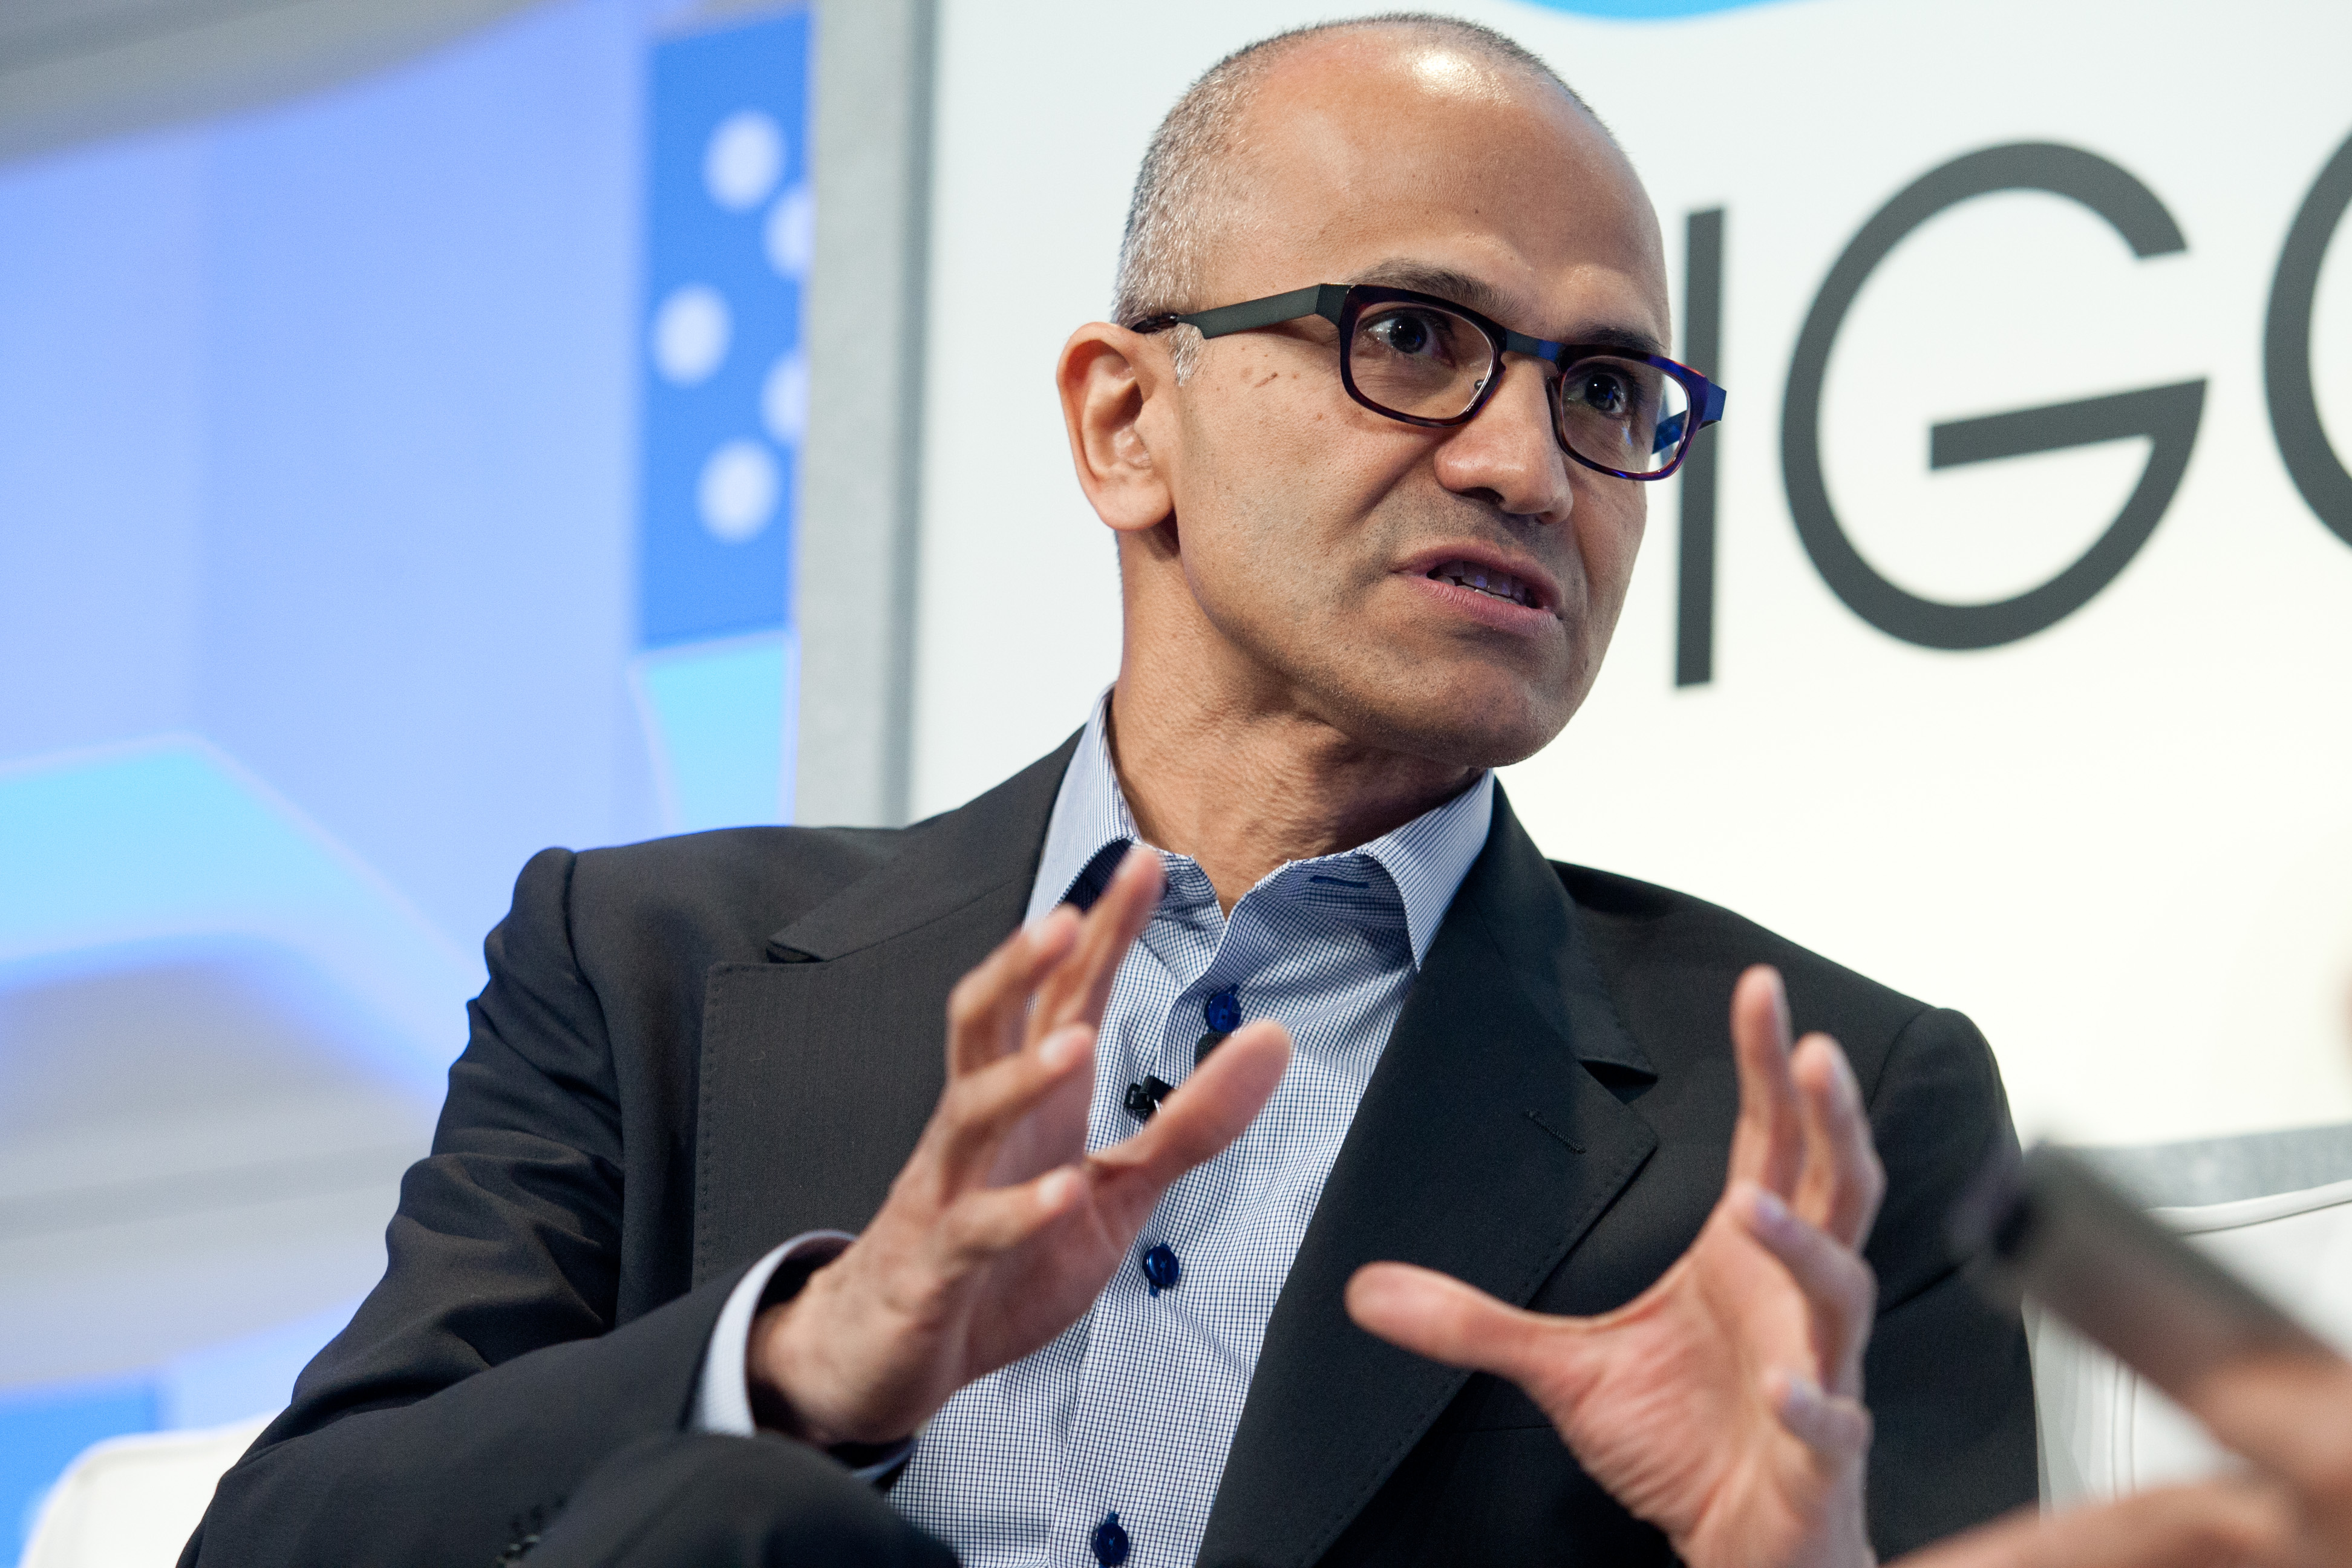 Speakers: Satya Nadella - President, Server and Tools Business, Microsoft